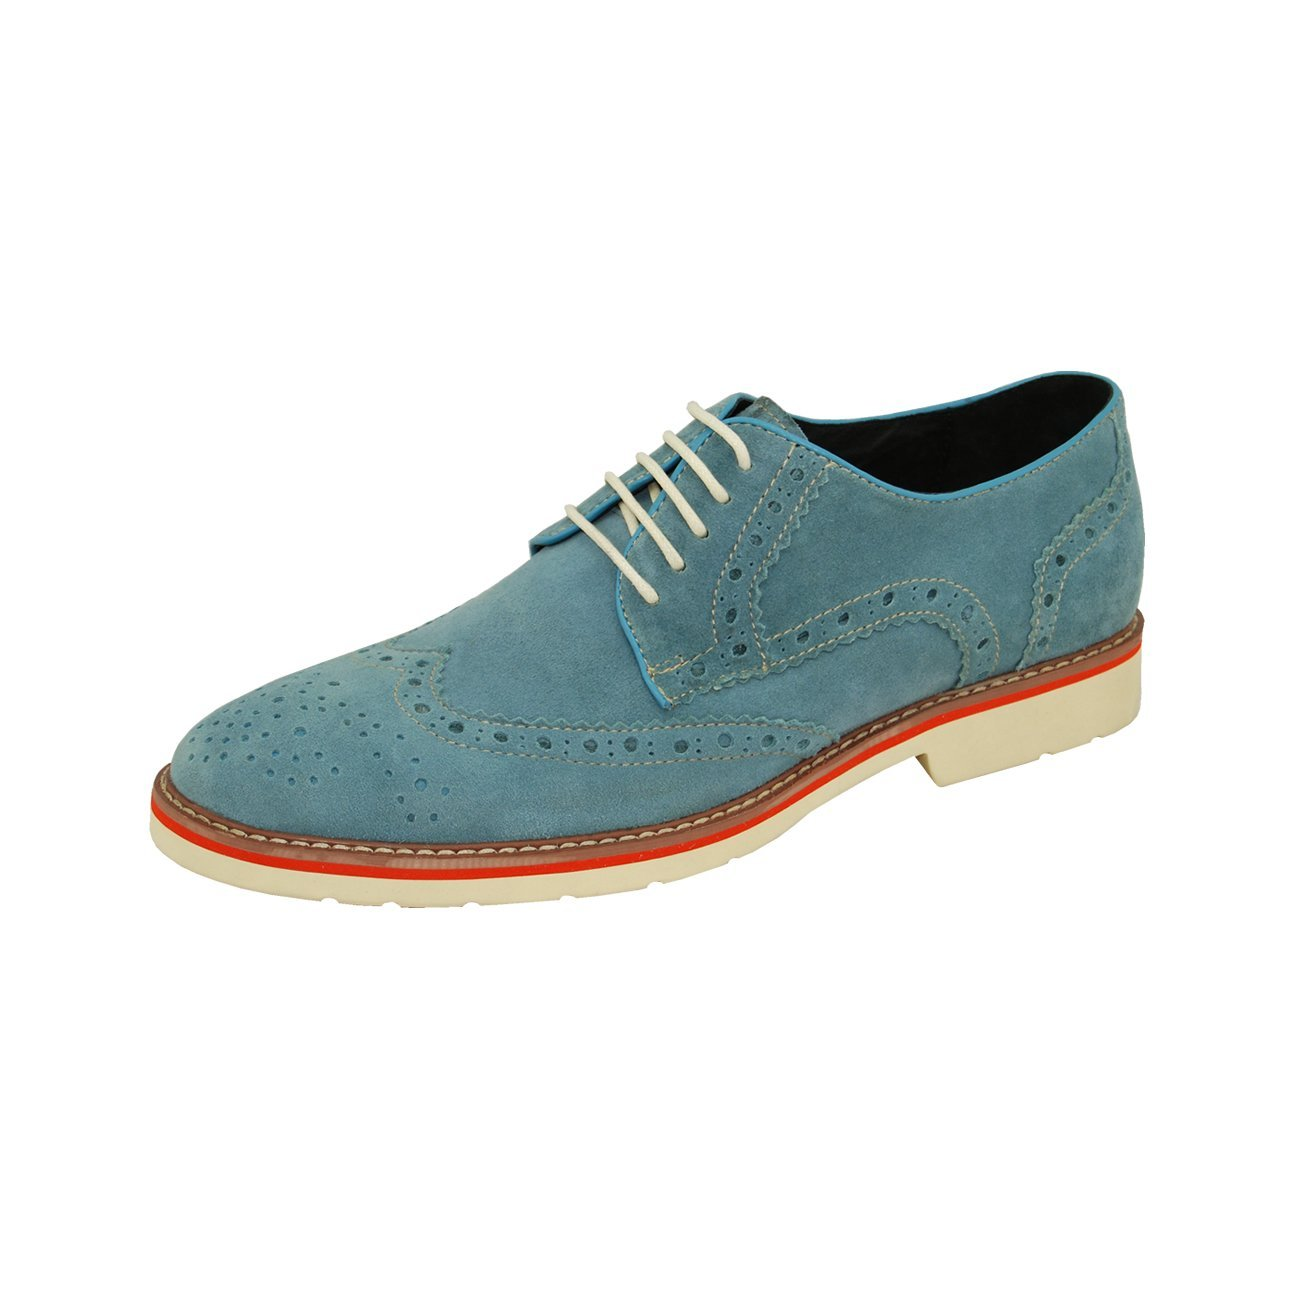 Natazzi Italian Napa Suede Calfskin Leather Shoes Hand Made Men S Player Lace Up Wingtip Oxford Shoe Model Armani 6010 Sky Blue